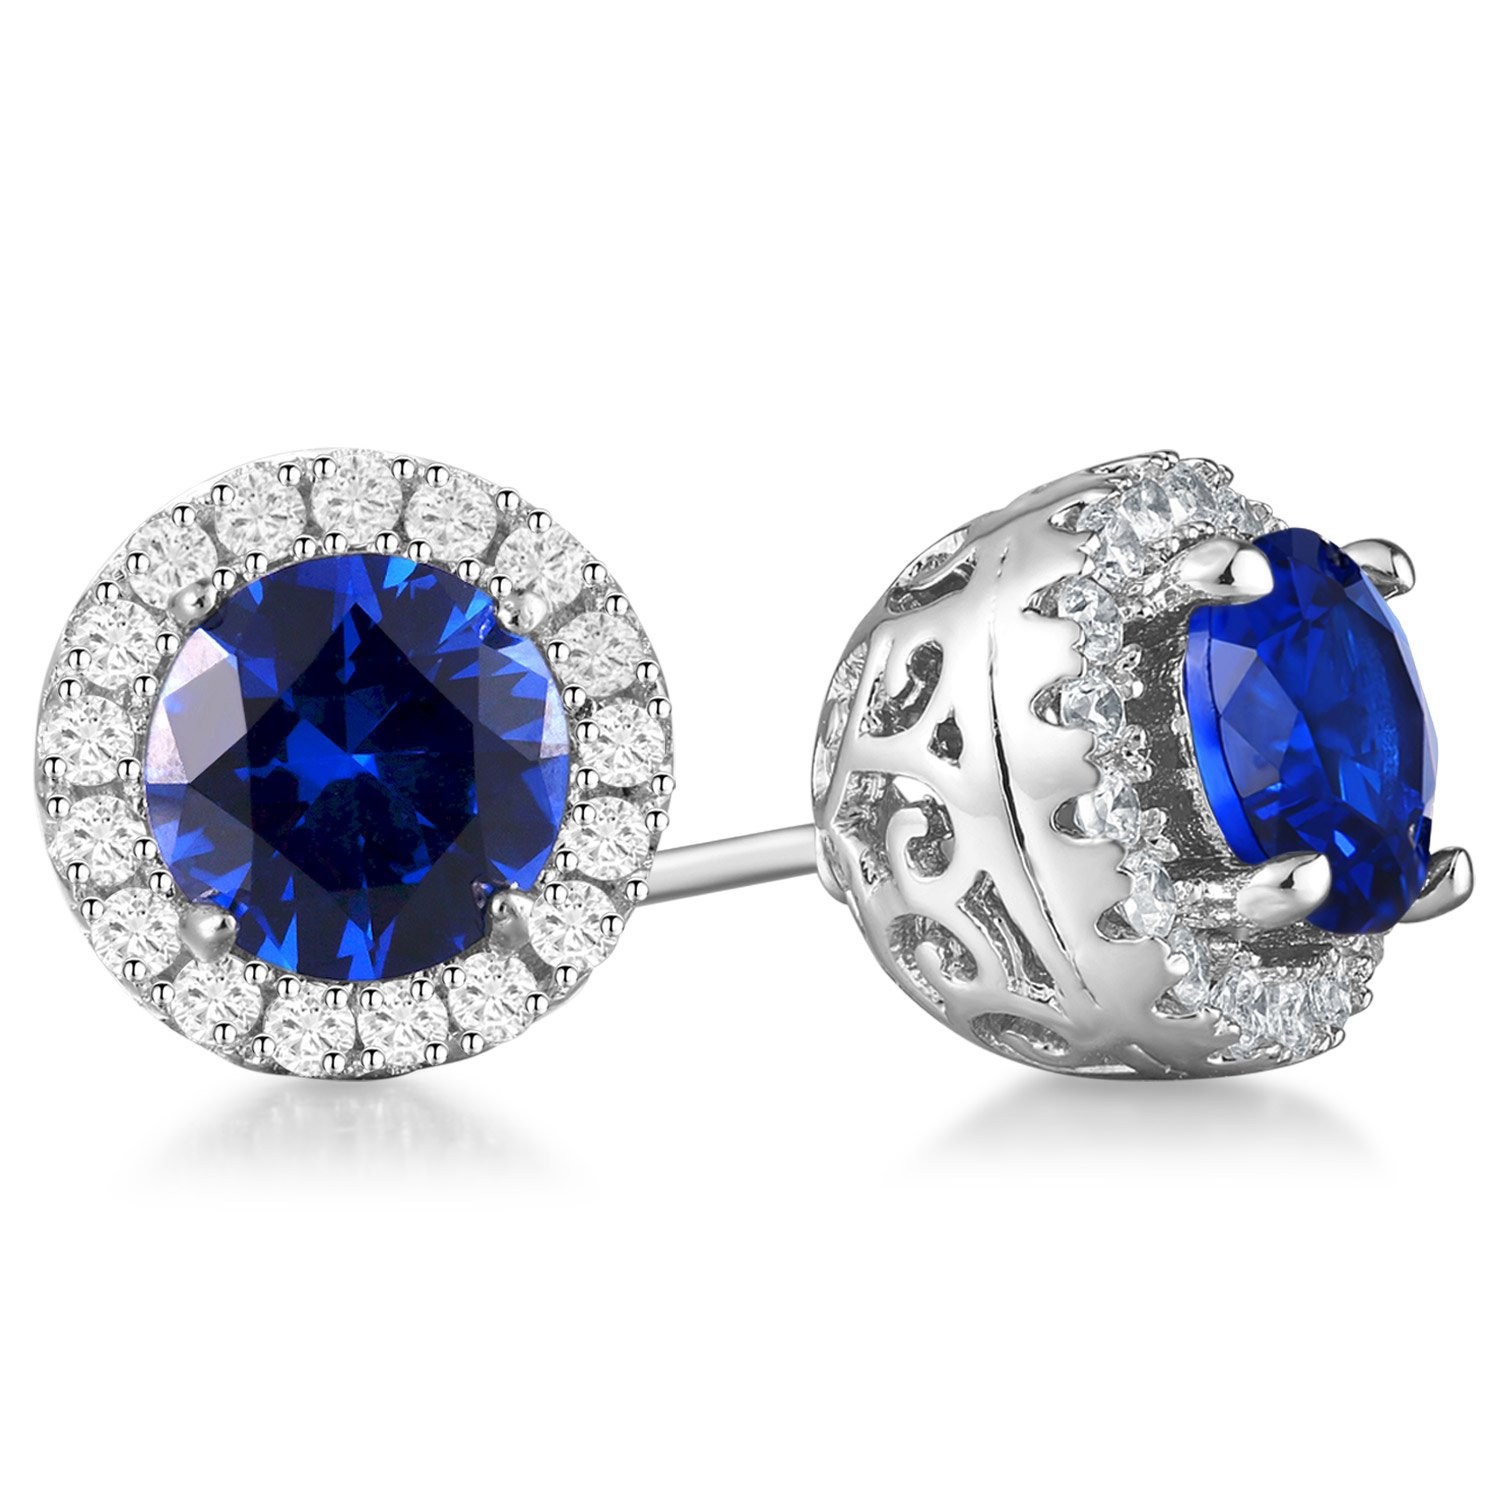 1bba155342724 Amazon.com  Vibrille 6mm Round Created Blue Sapphire Sterling Silver Stud  Earrings for Women with Cubic Zirconia Halo  Jewelry